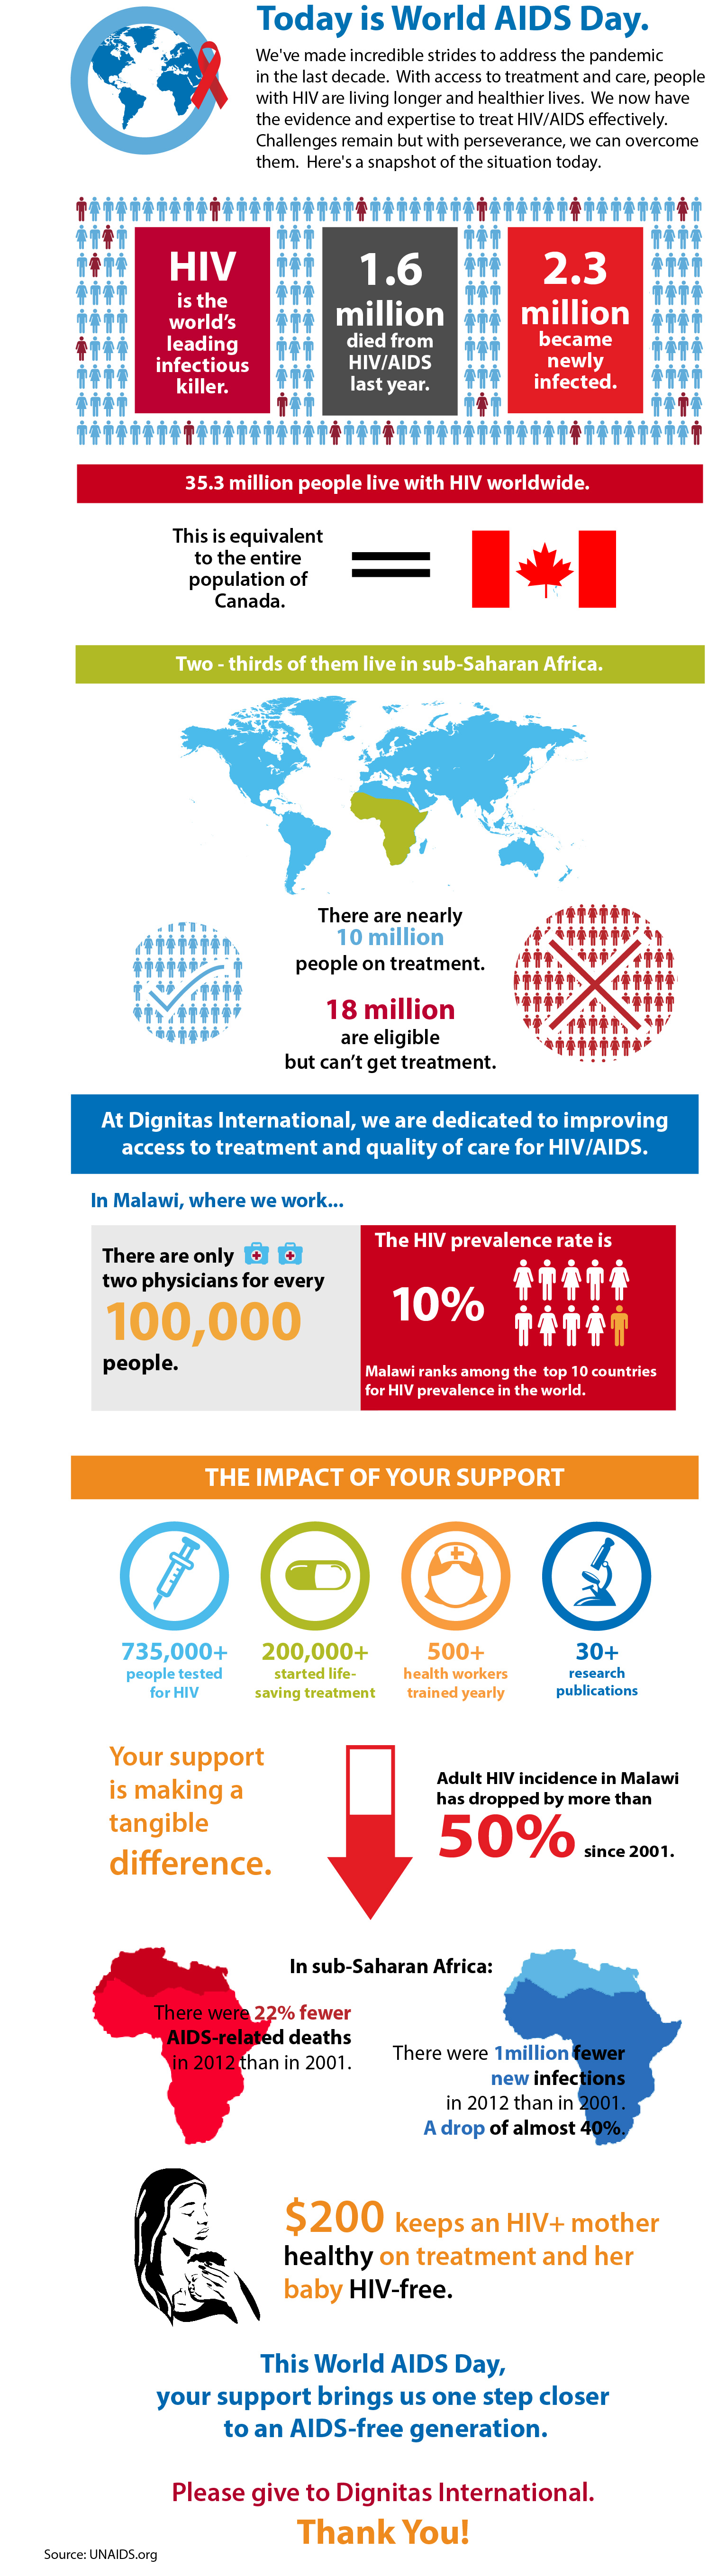 25th World AIDS Day: Infographic